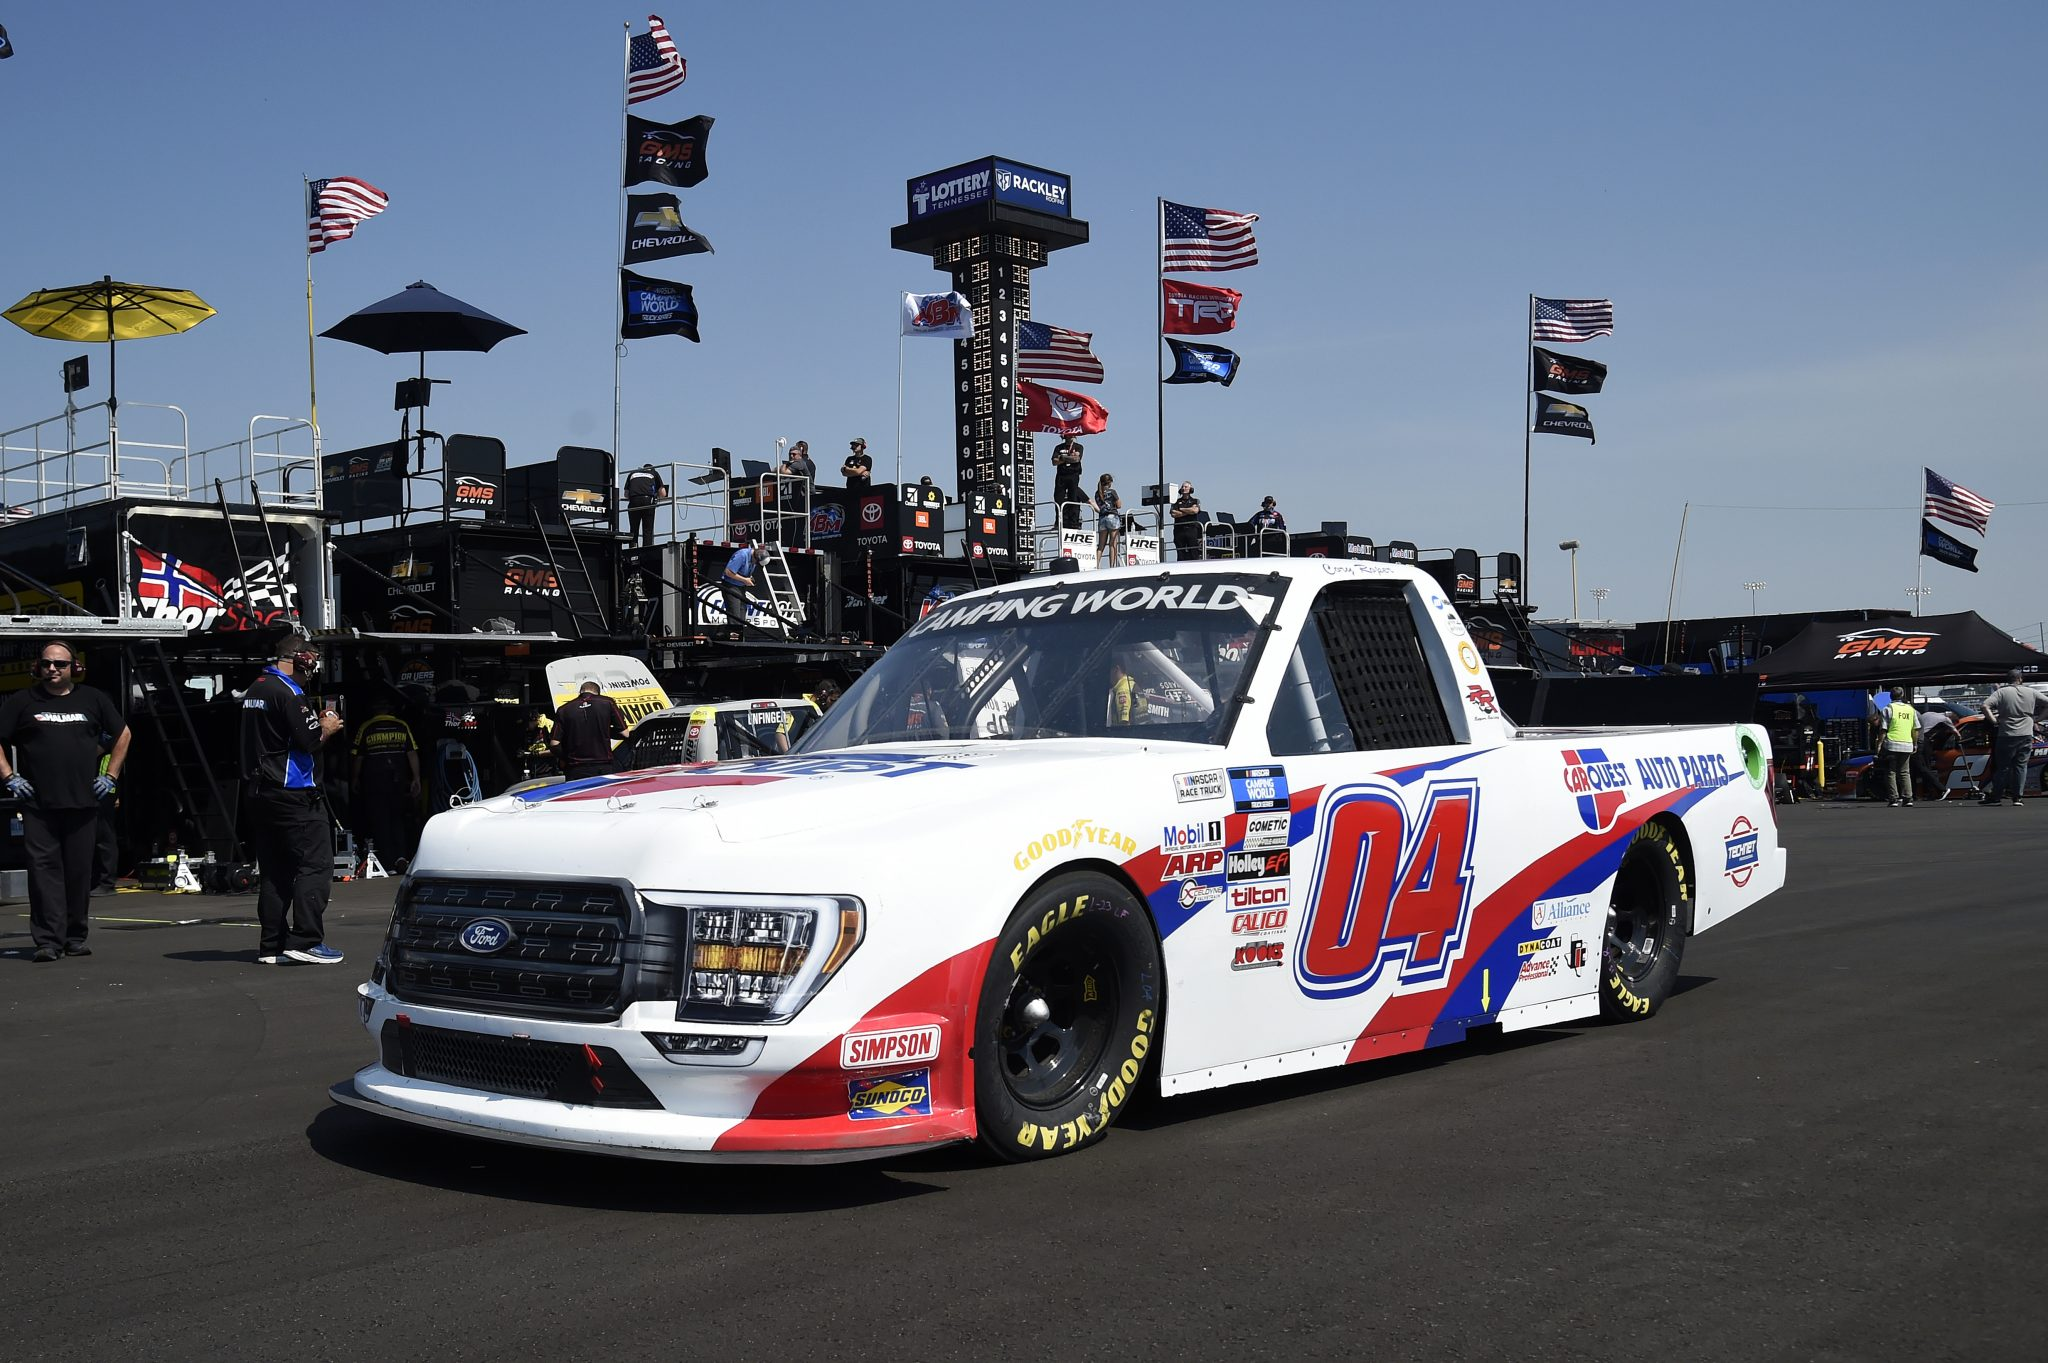 LEBANON, TENNESSEE - JUNE 18: Cory Roper, driver of the #04 CarQuest Auto Parts Ford, drives in the garage area during practice for the NASCAR Camping World Truck Series Rackley Roofing 200 at Nashville Superspeedway on June 18, 2021 in Lebanon, Tennessee. (Photo by Logan Riely/Getty Images) | Getty Images